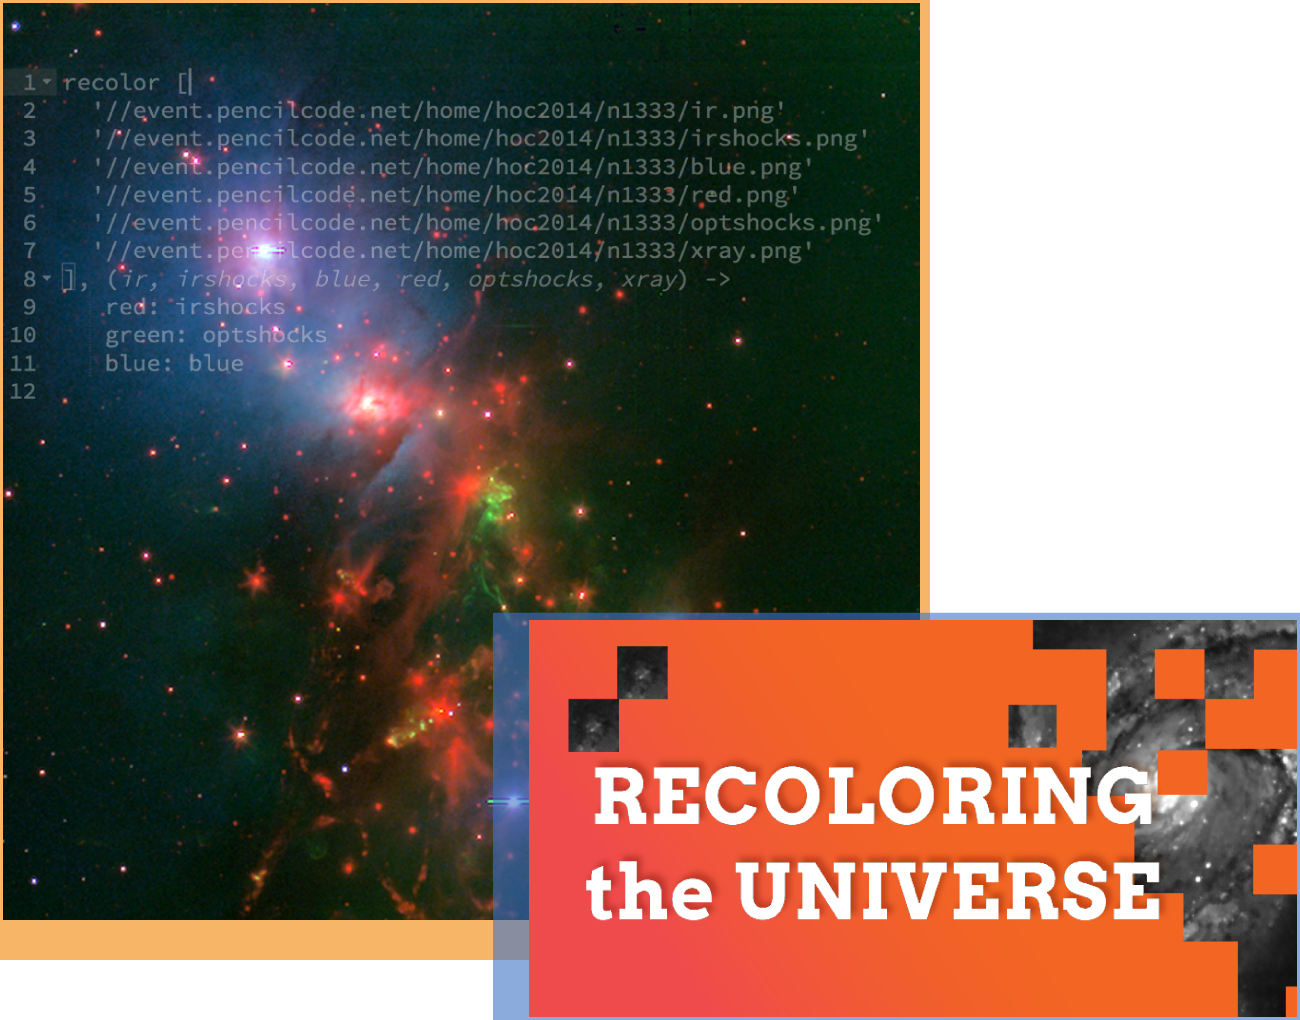 Recoloring the Universe - Students with no prior coding experience can learn how to use computers to create images and understand astronomical data. Participants learn basic coding, starting with familiar objects and simple concepts such as shape and color, graduating to astronomical objects. Following a scaffolded set of activities, and working with data from NASA's space telescopes on sources from exploded stars and star-forming regions to galaxies and black holes, participants can experience real world application of science, technology, and even art.Audience: High School Age, Amateur AstronomersData tool: Recoloring the Universe (with Pencil Code) project